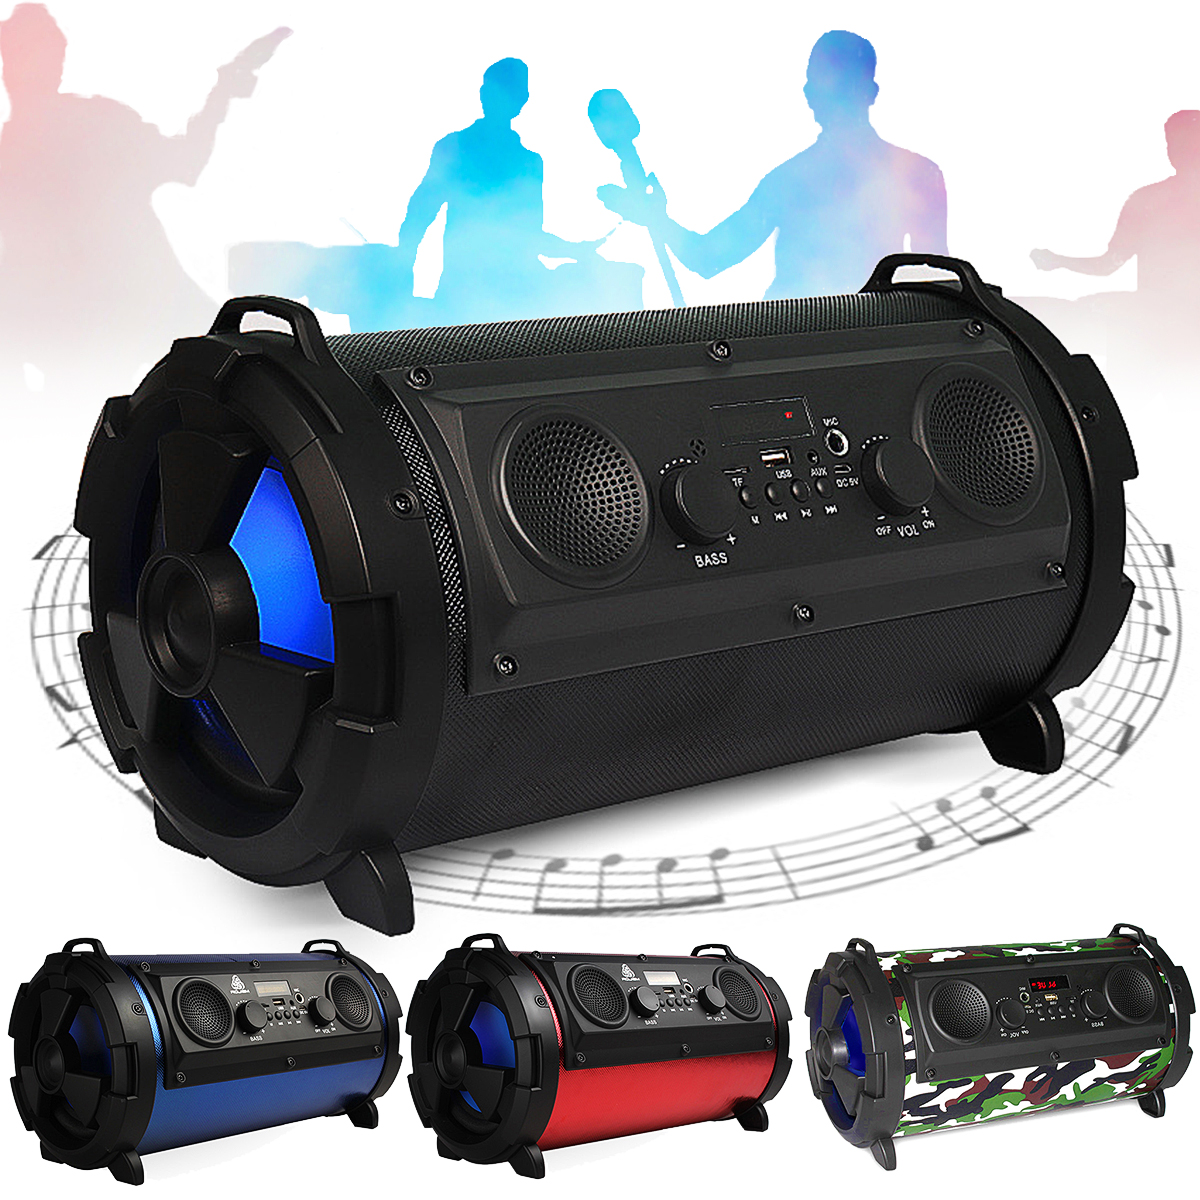 Outdoor Portable Wireless Bluetooth Speaker Subwoofer and Mic Super Bass Woofer HIFI Stereo Loundspeaker Support TF USB FM Radio portable wireless bluetooth column speaker stereo subwoofer support usb sound box tf fm radio with mic dual bass loudspeaker